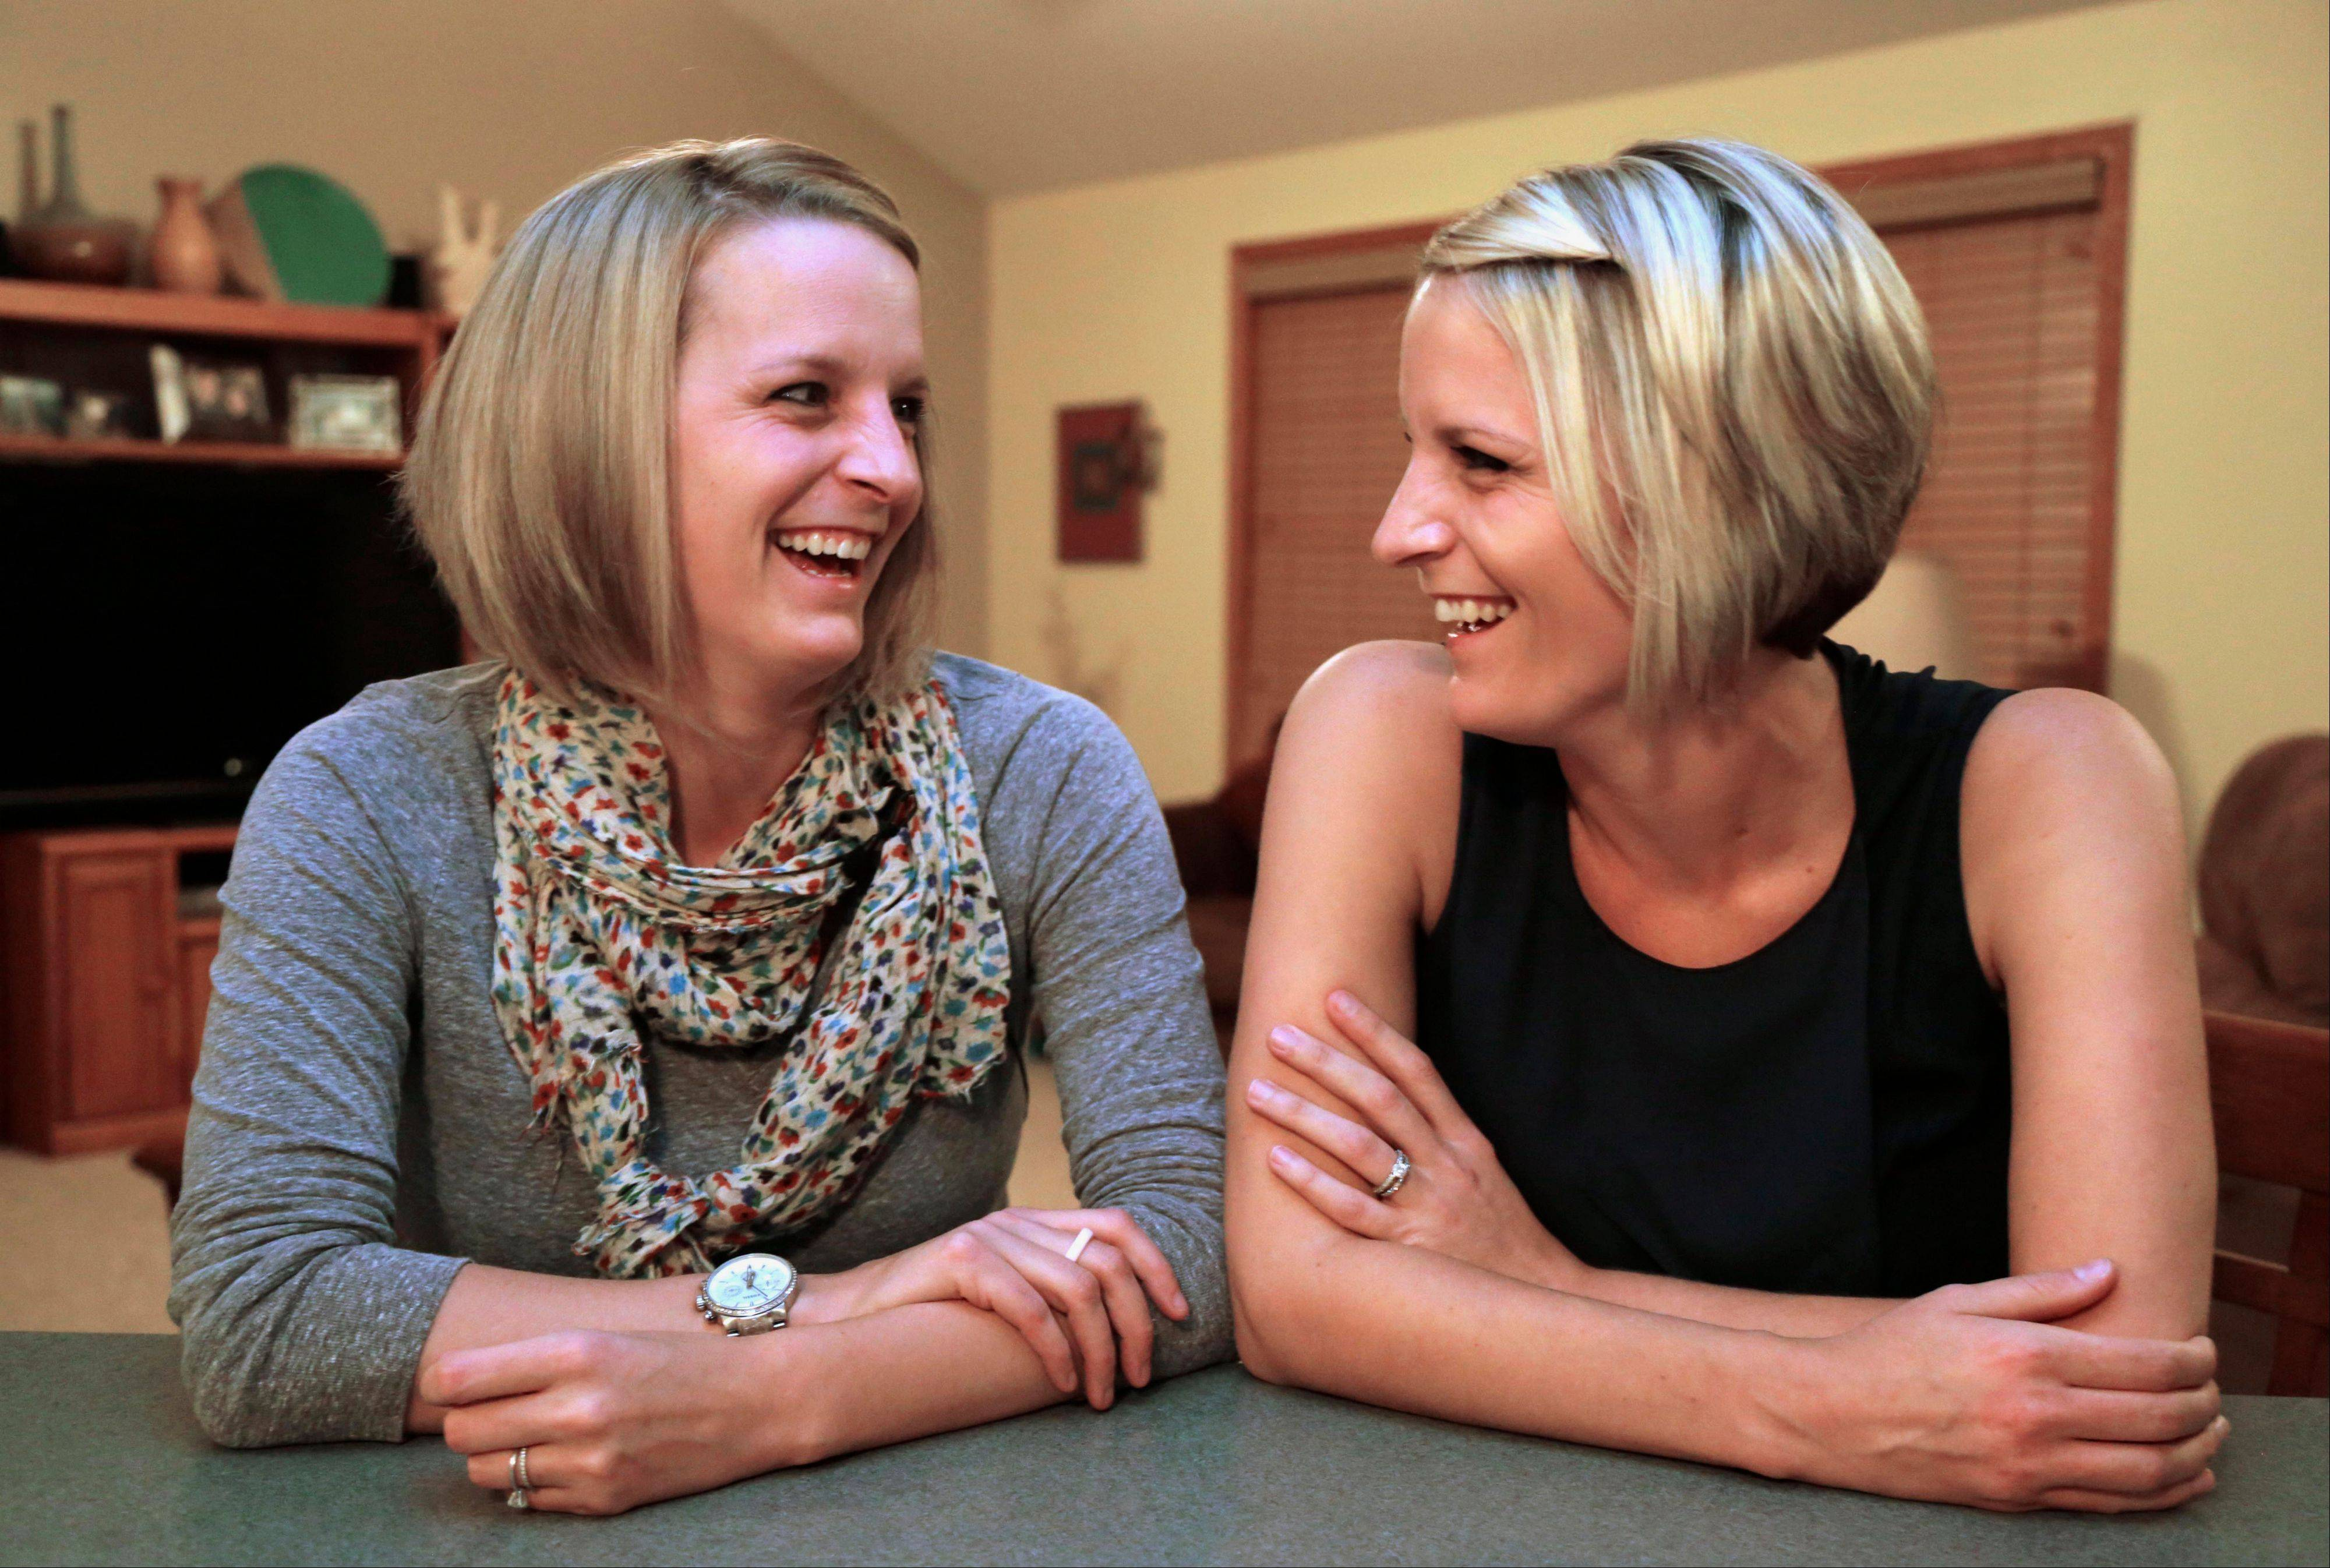 Identical twins Kristen Maurer, left, and Kelly McCarthy. The 34-year-old sisters from Crown Point, Ind., have shared a lot in their lives so when Kelly was diagnosed with breast cancer in 2011, she urged Kristen to get tested, too. Kristen also was diagnosed with breast cancer. Now the twins are sharing a medical rarity: Kristen donated skin and fat tissue for Kelly's breast reconstruction surgery.